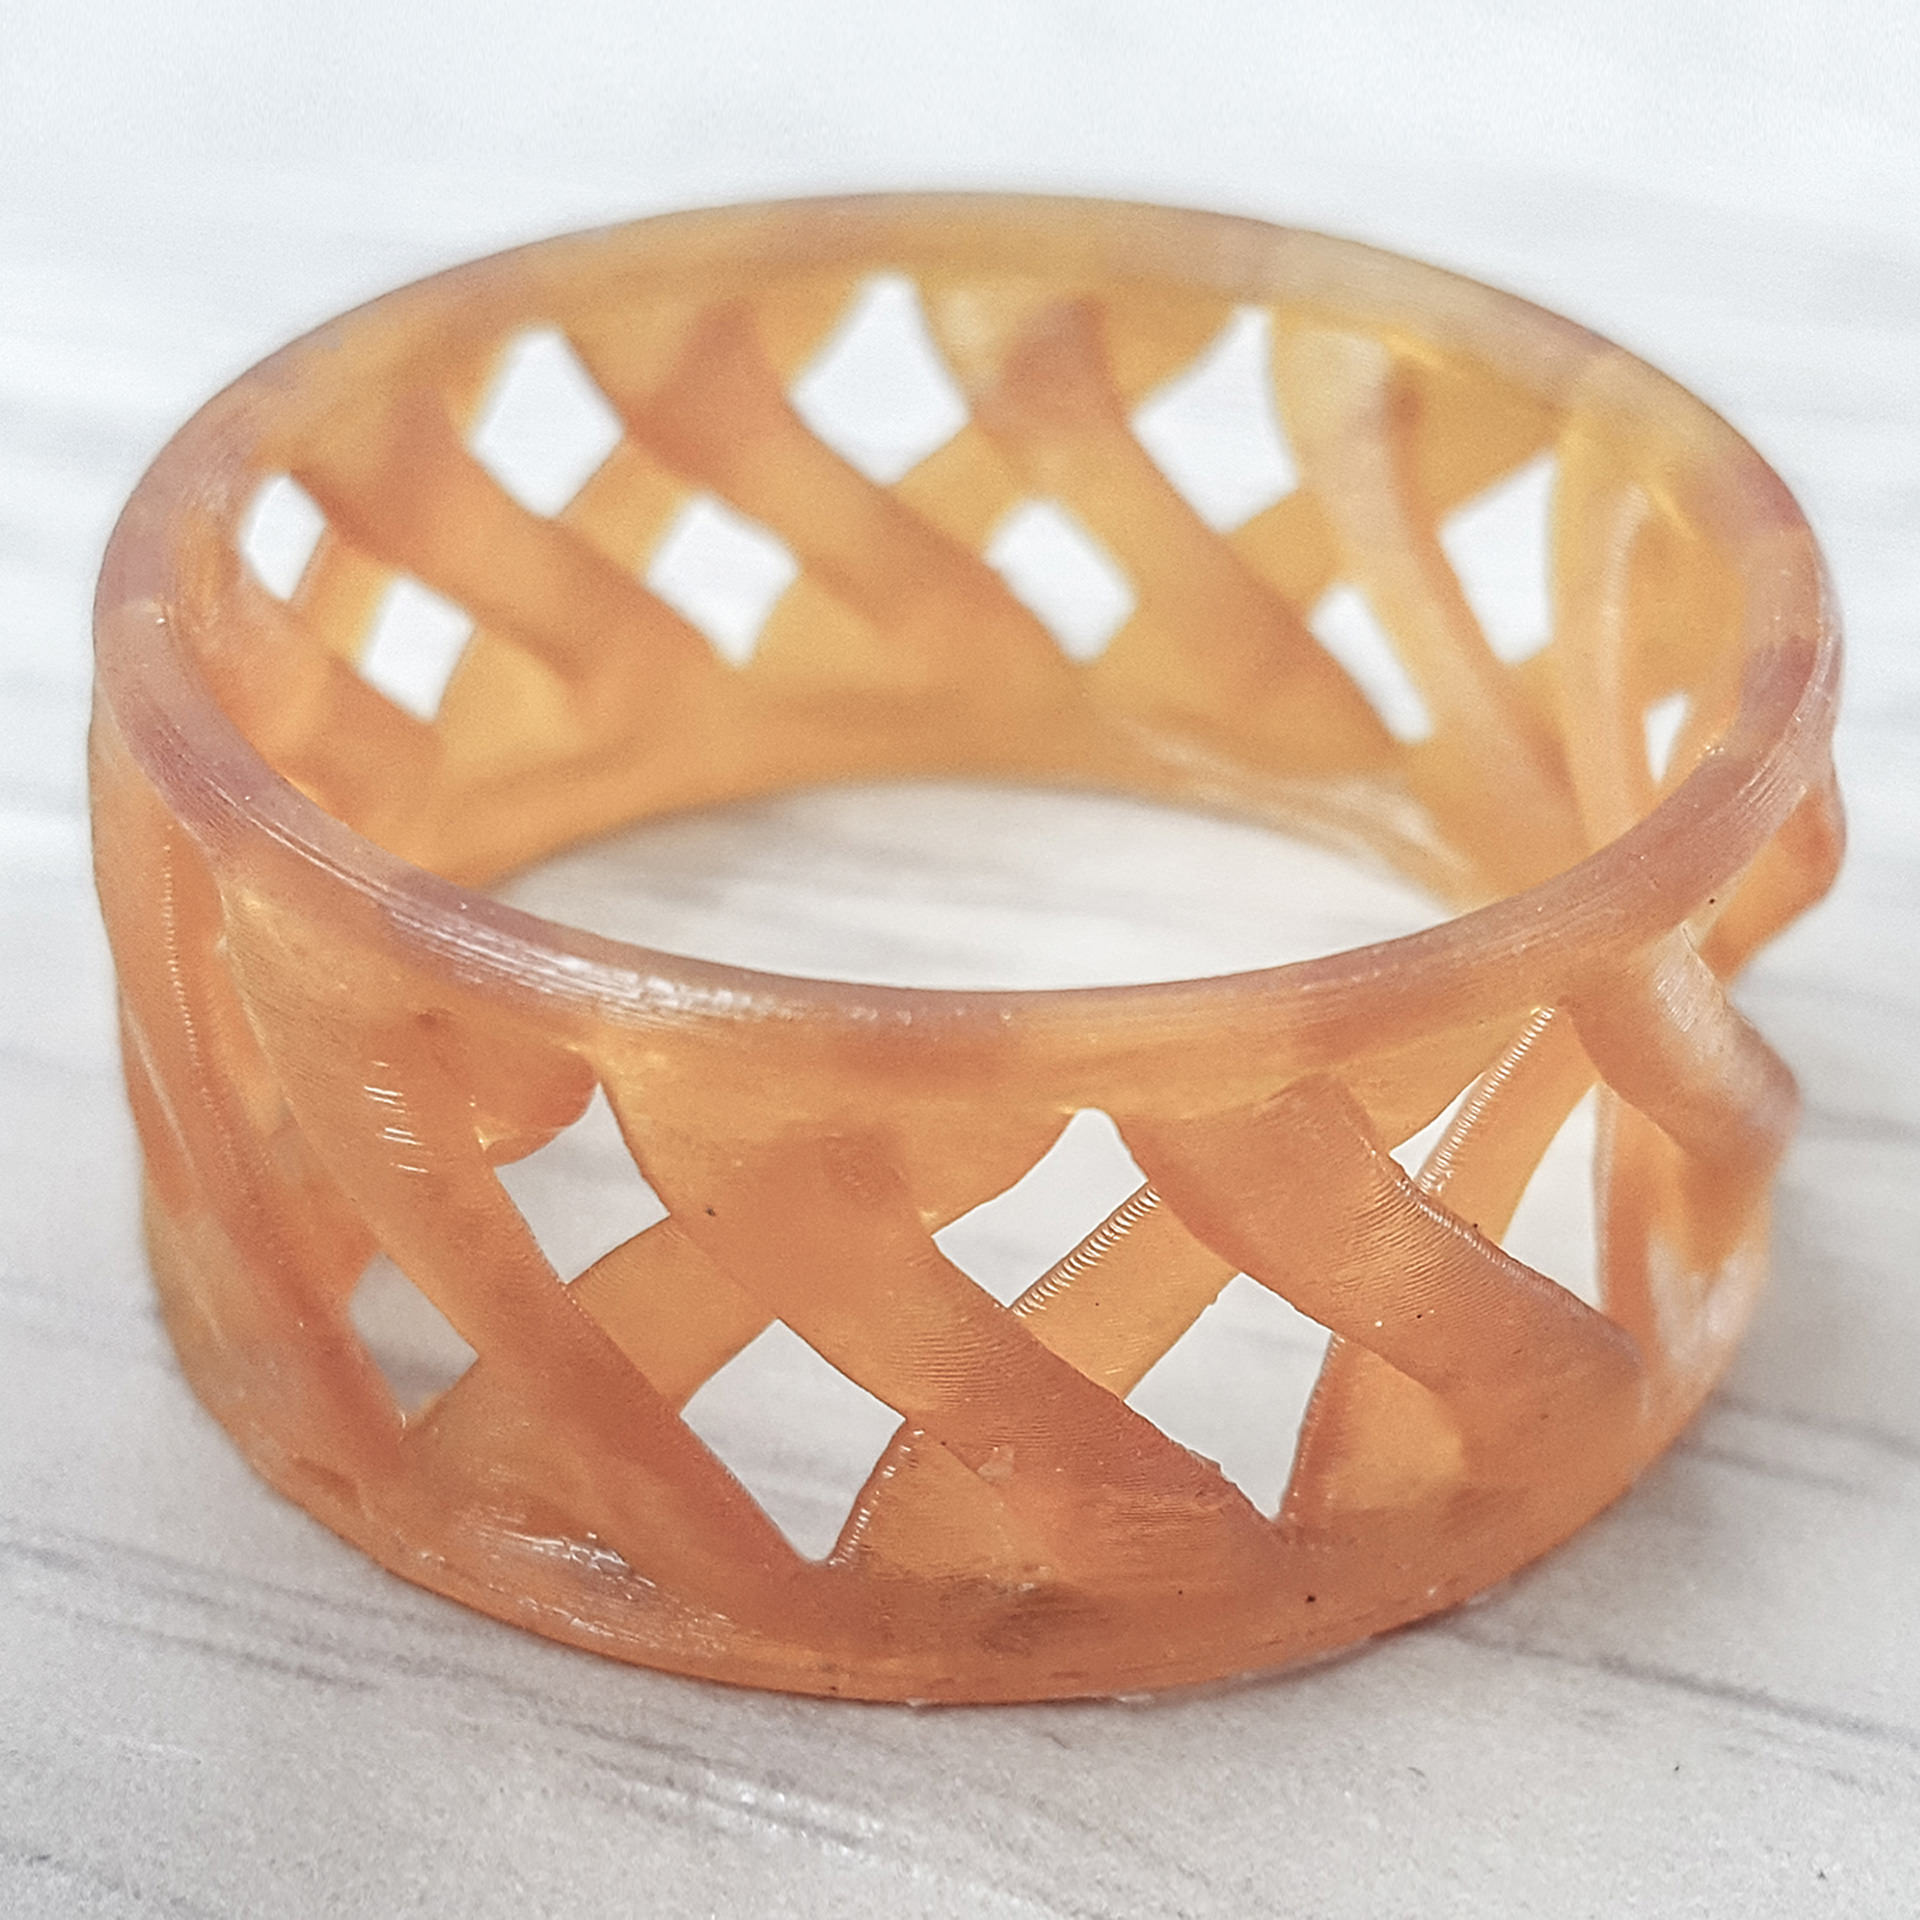 olo-ring3d